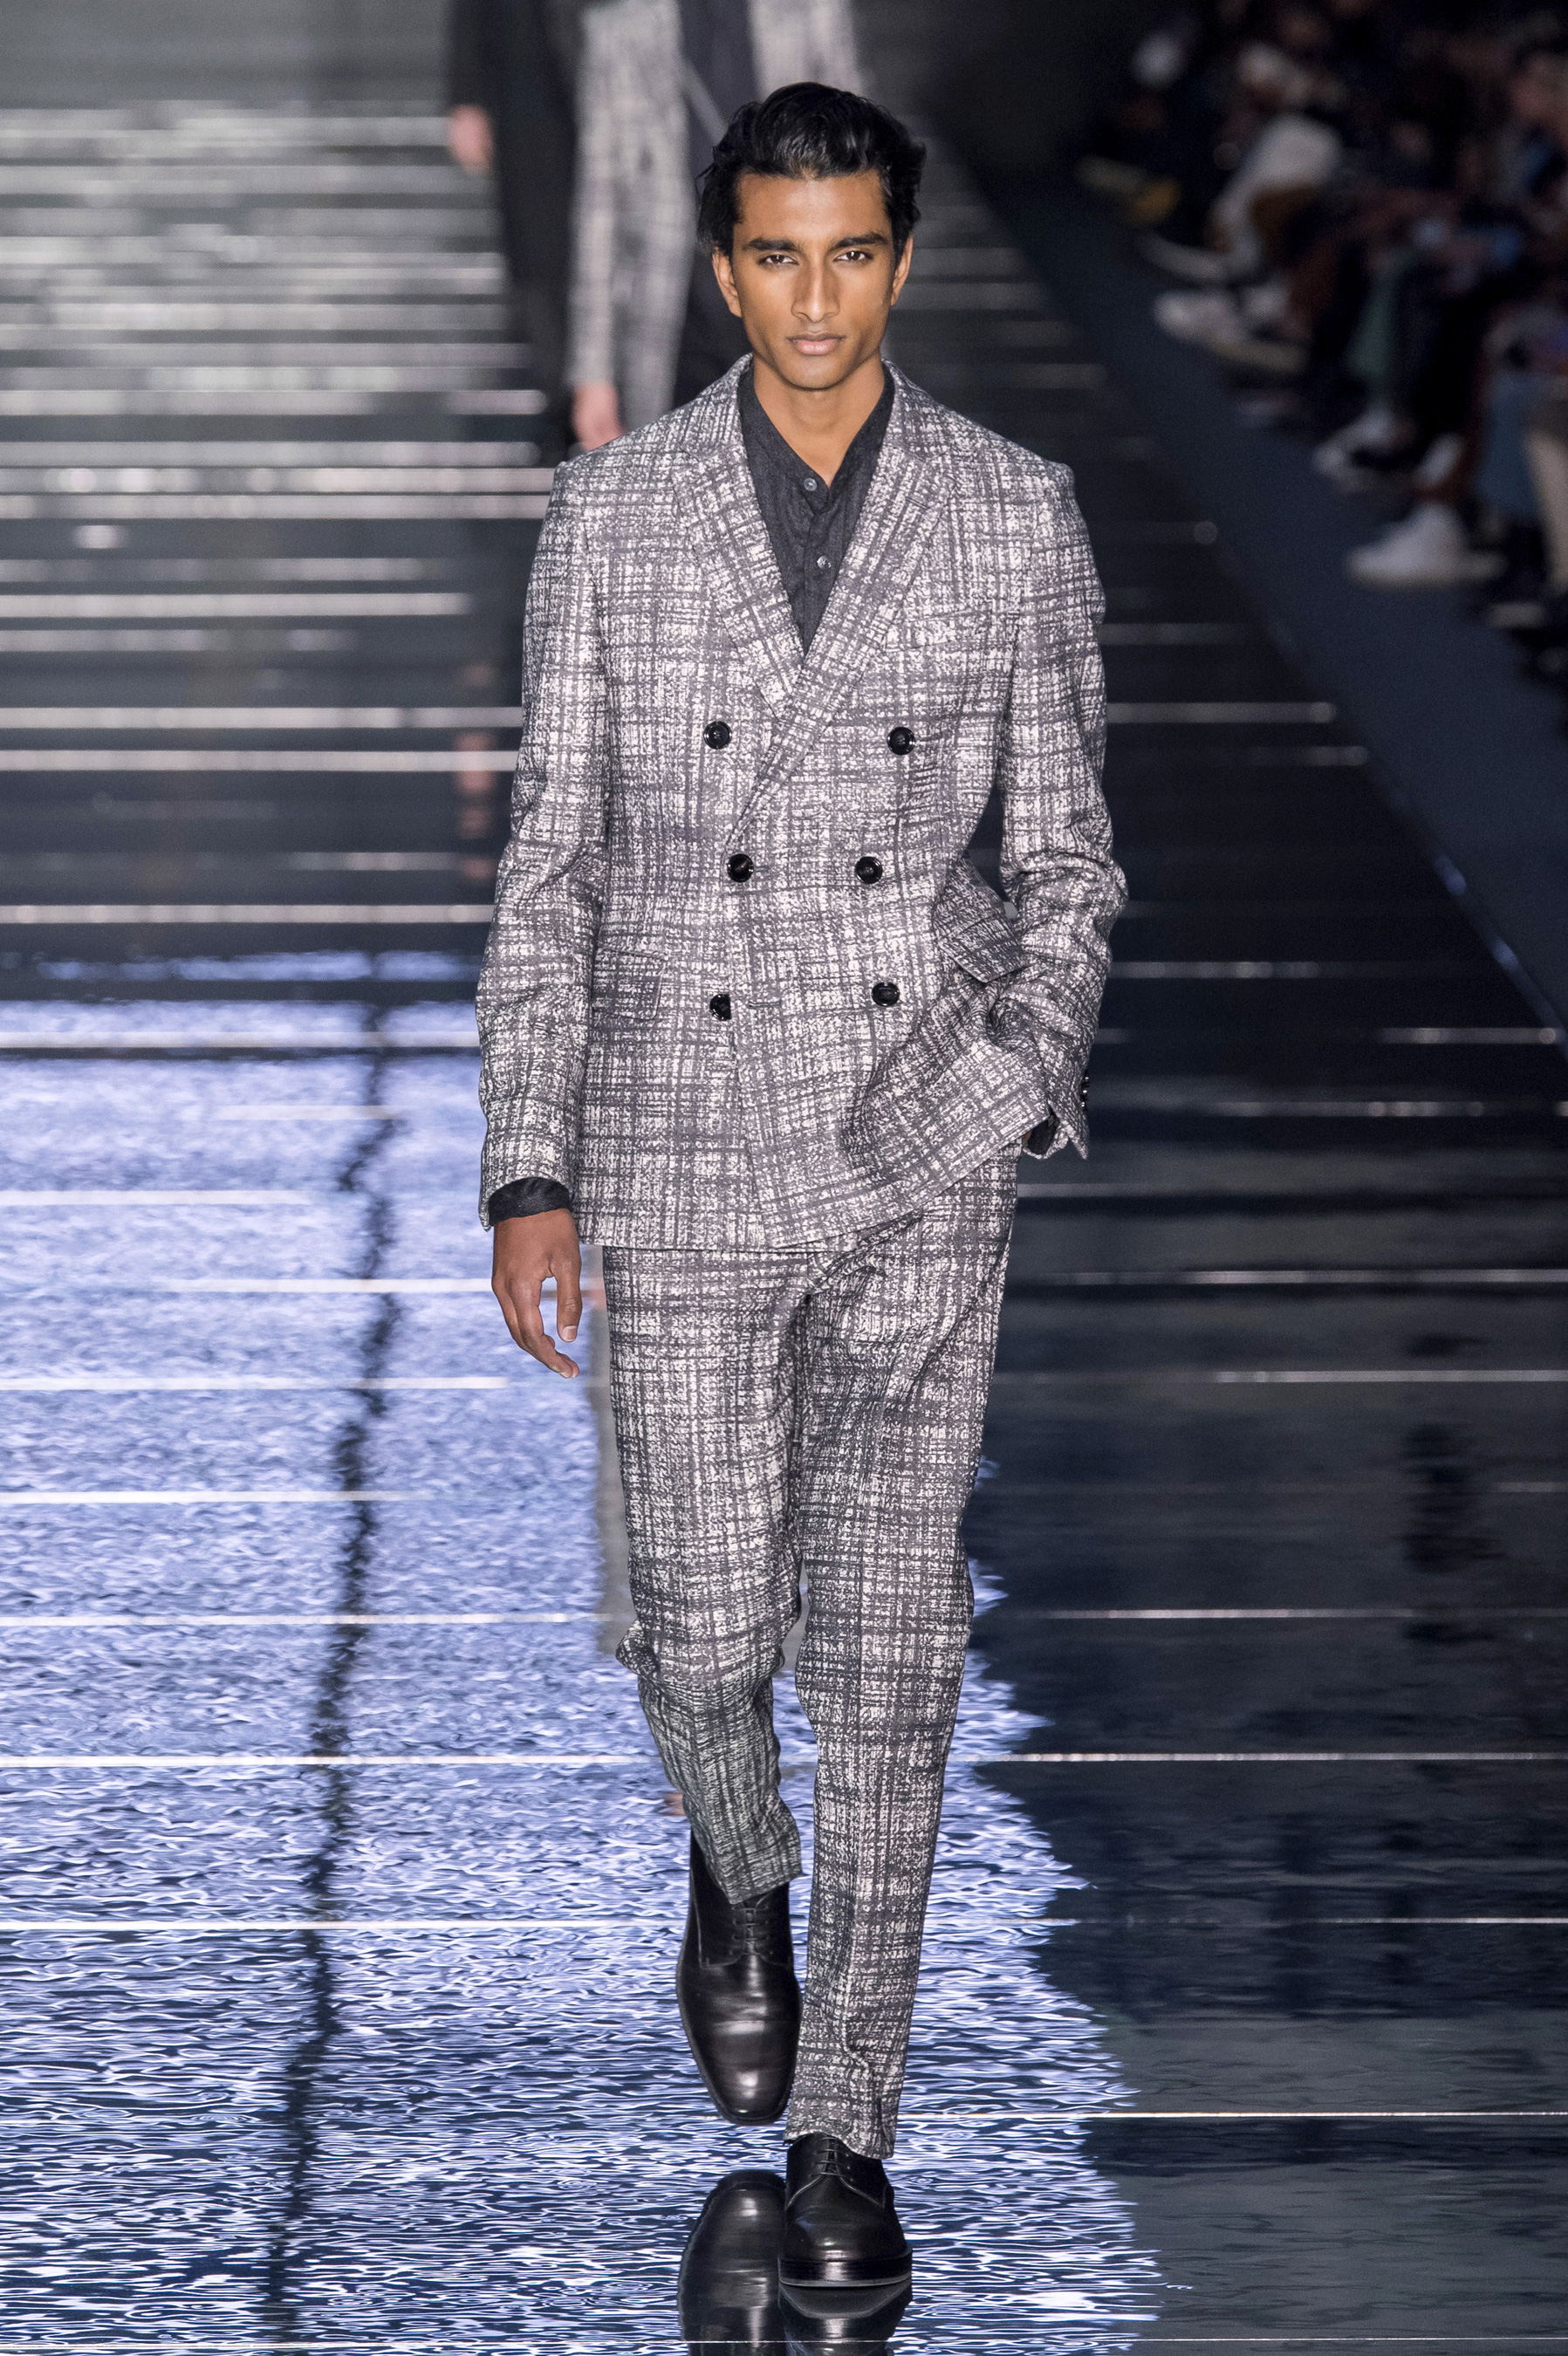 Top 10 Most Popular Men's Models of Fall 2019